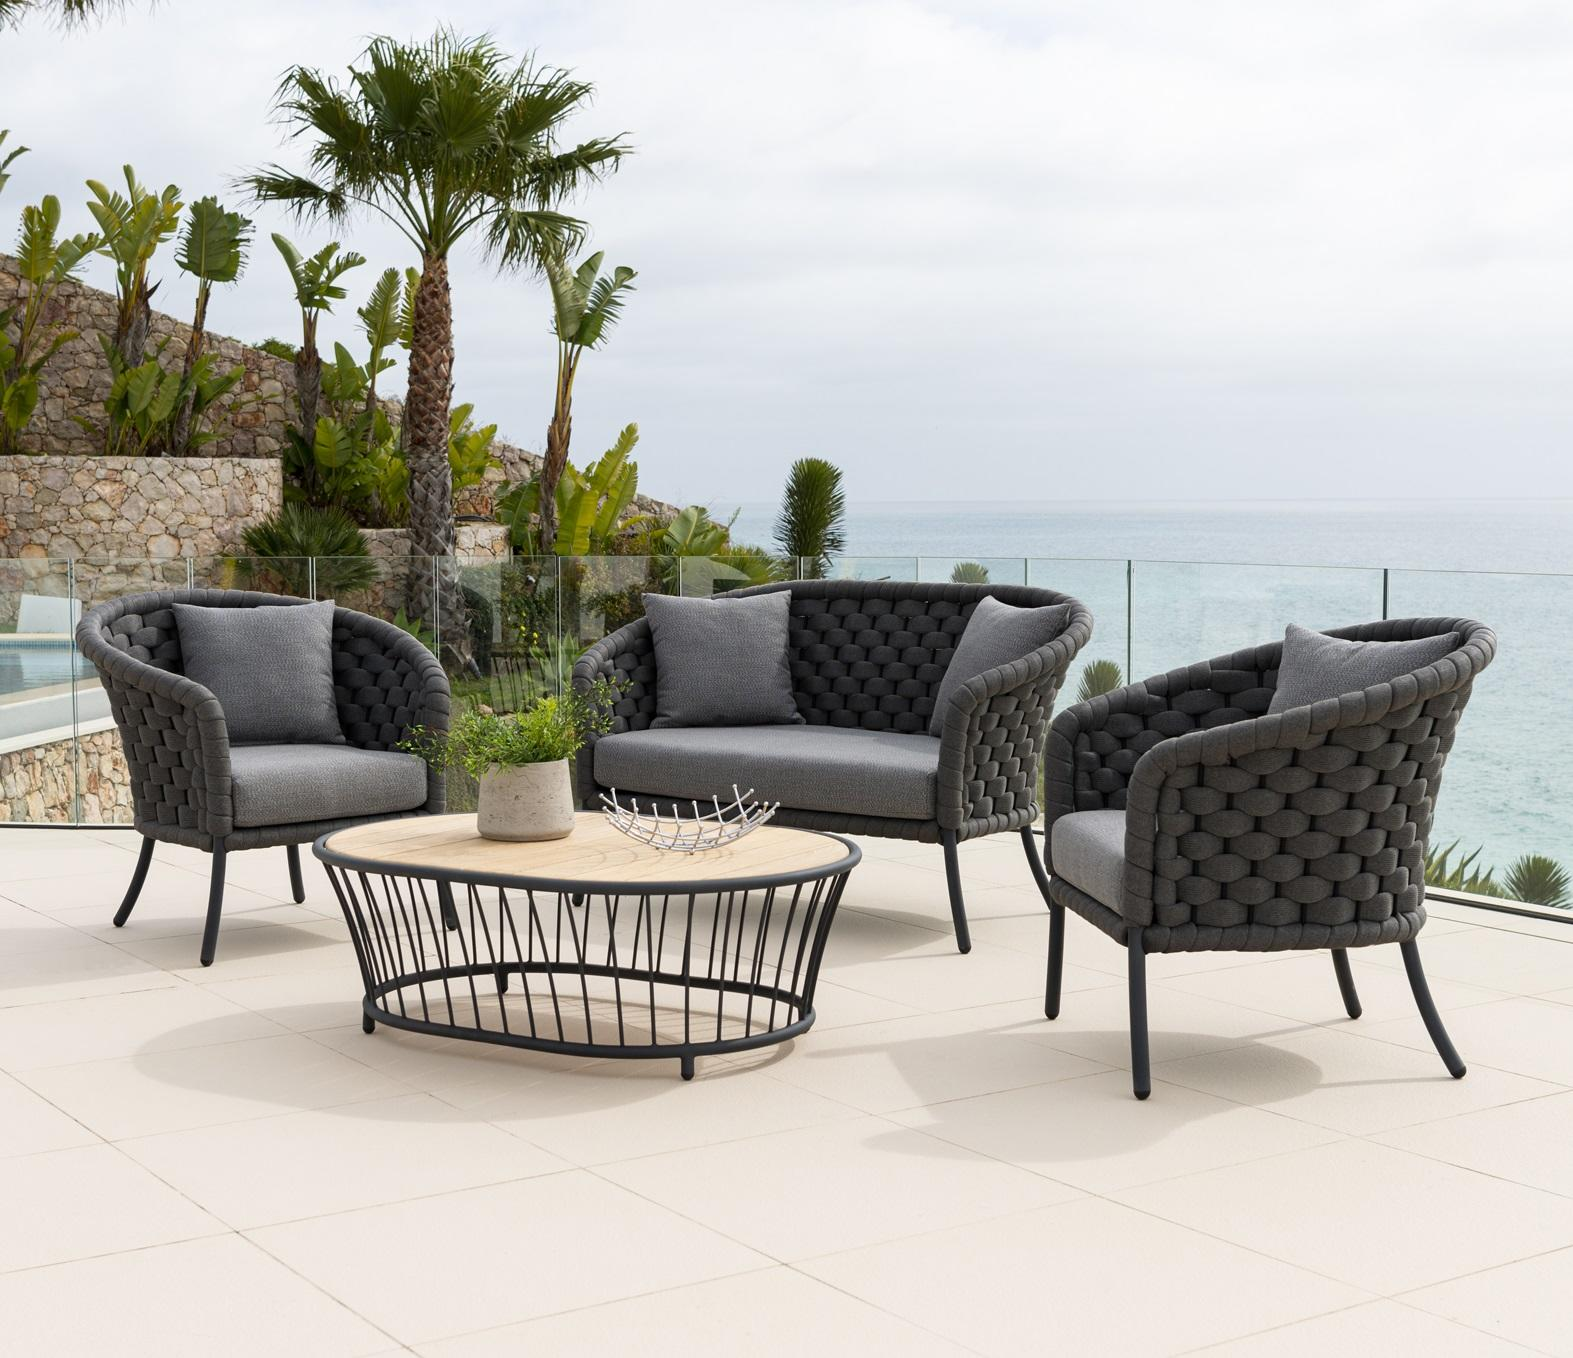 modern rope weave garden lounge sofa and armchairs in charcoal grey